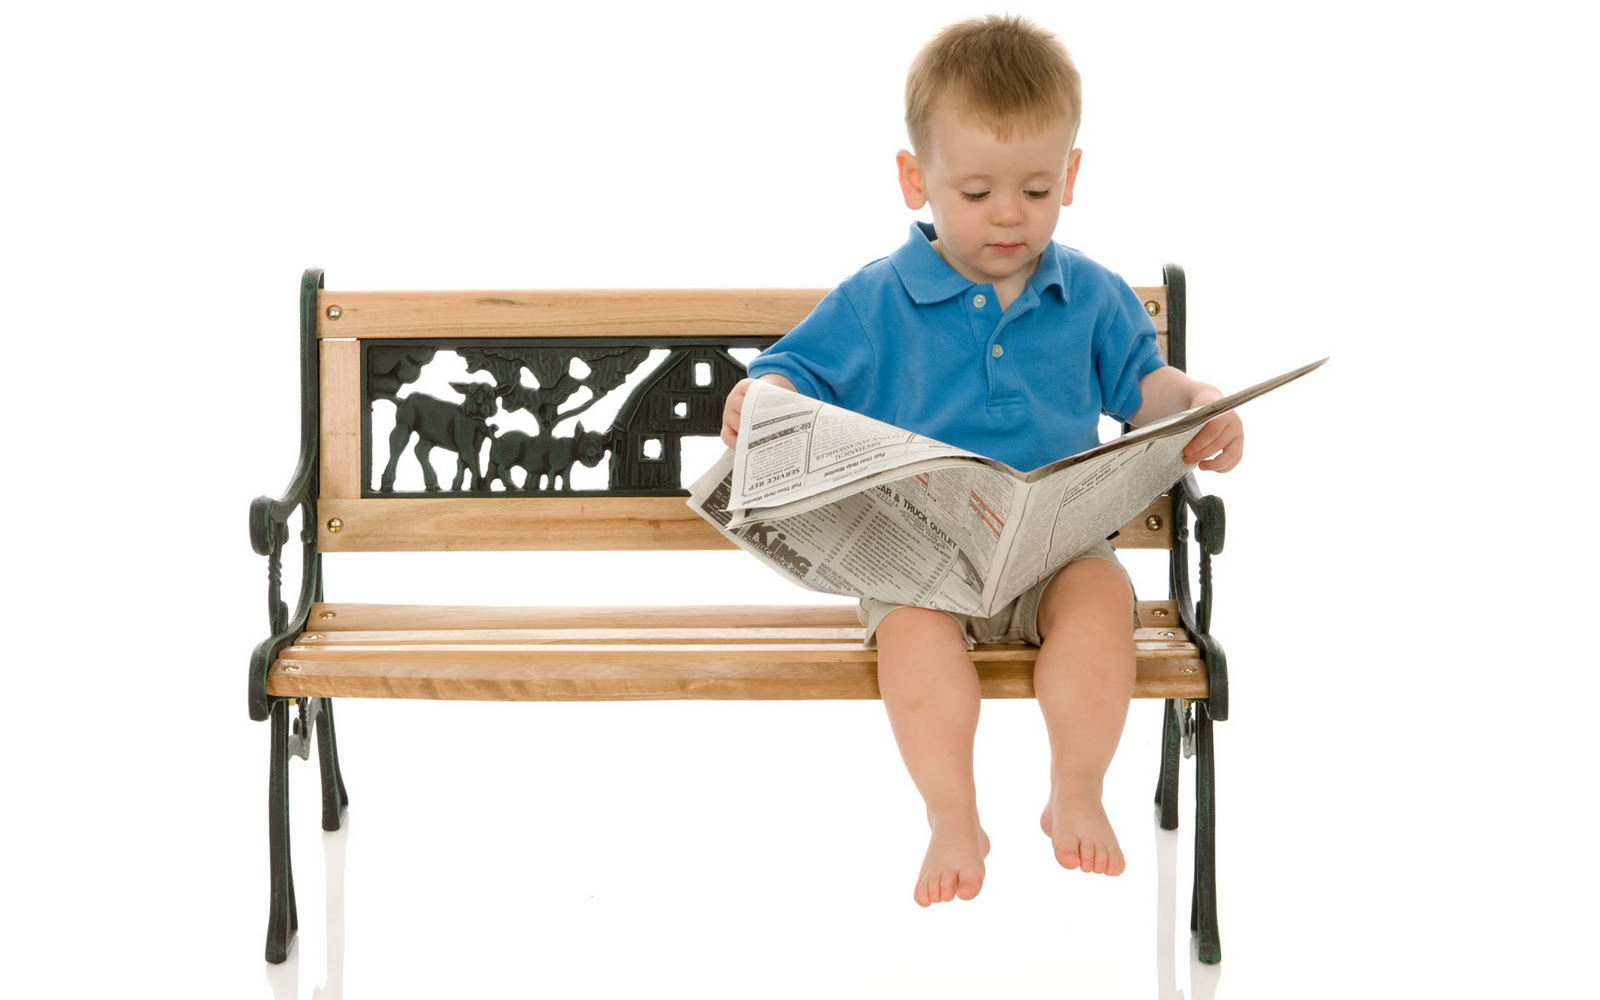 Image result for cute baby reading book blogspot.com